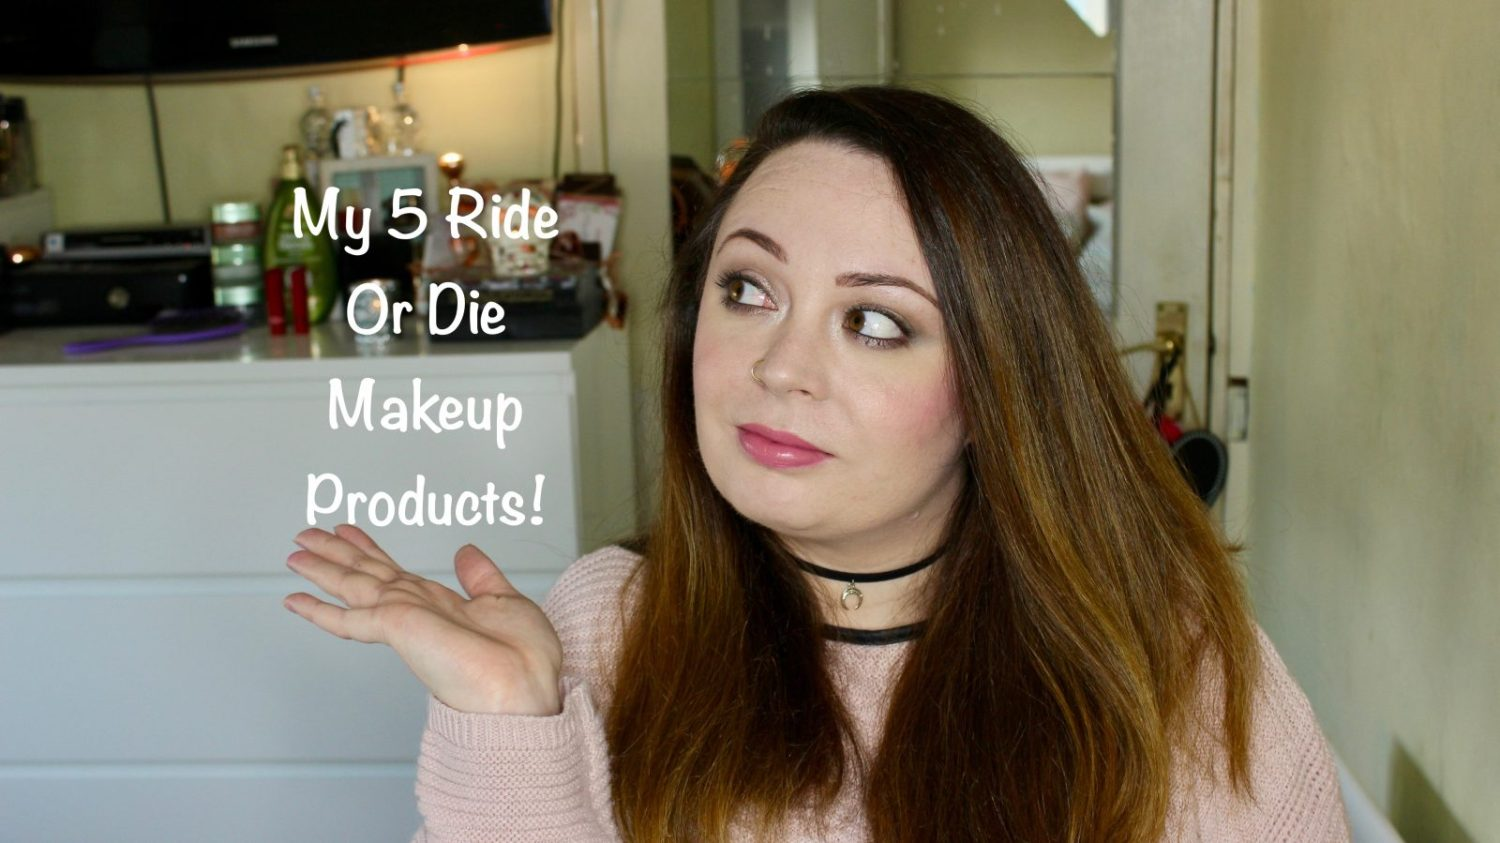 ride or die makeup products